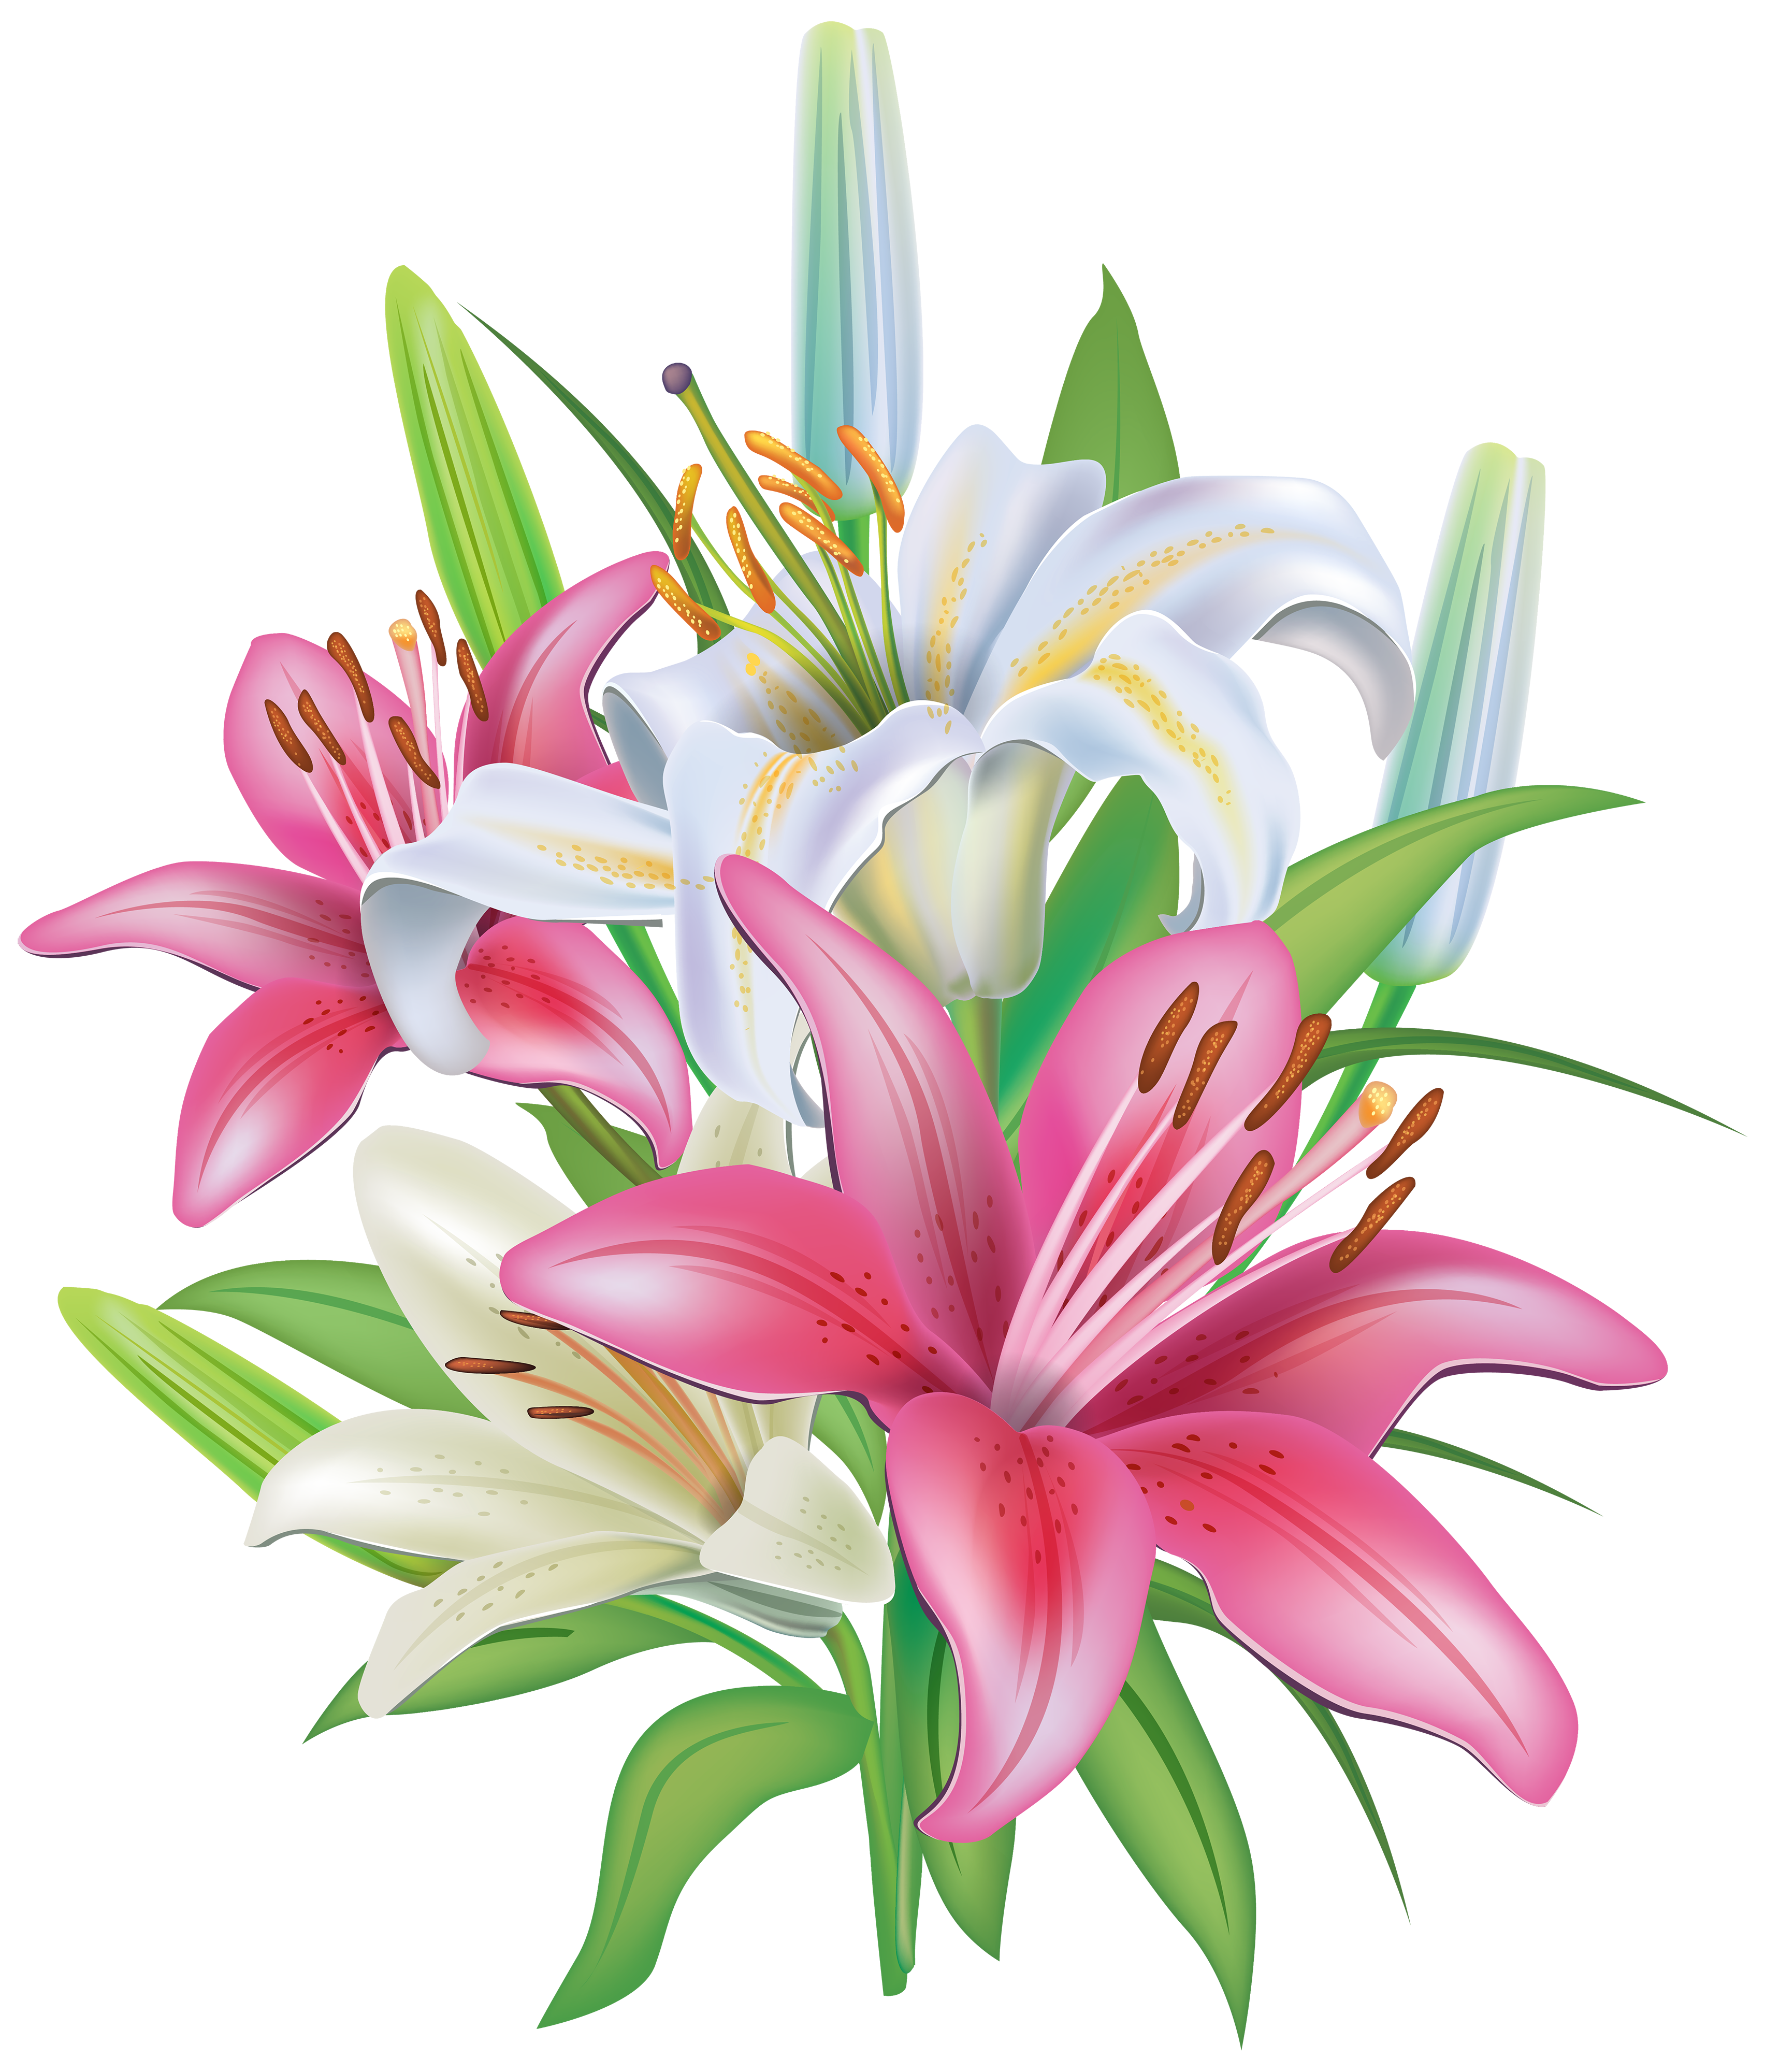 Flower reaching for sun clipart clipart black and white download Pink lilies clipart #6 | Flores | Pinterest | Pink lily and Clipart ... clipart black and white download